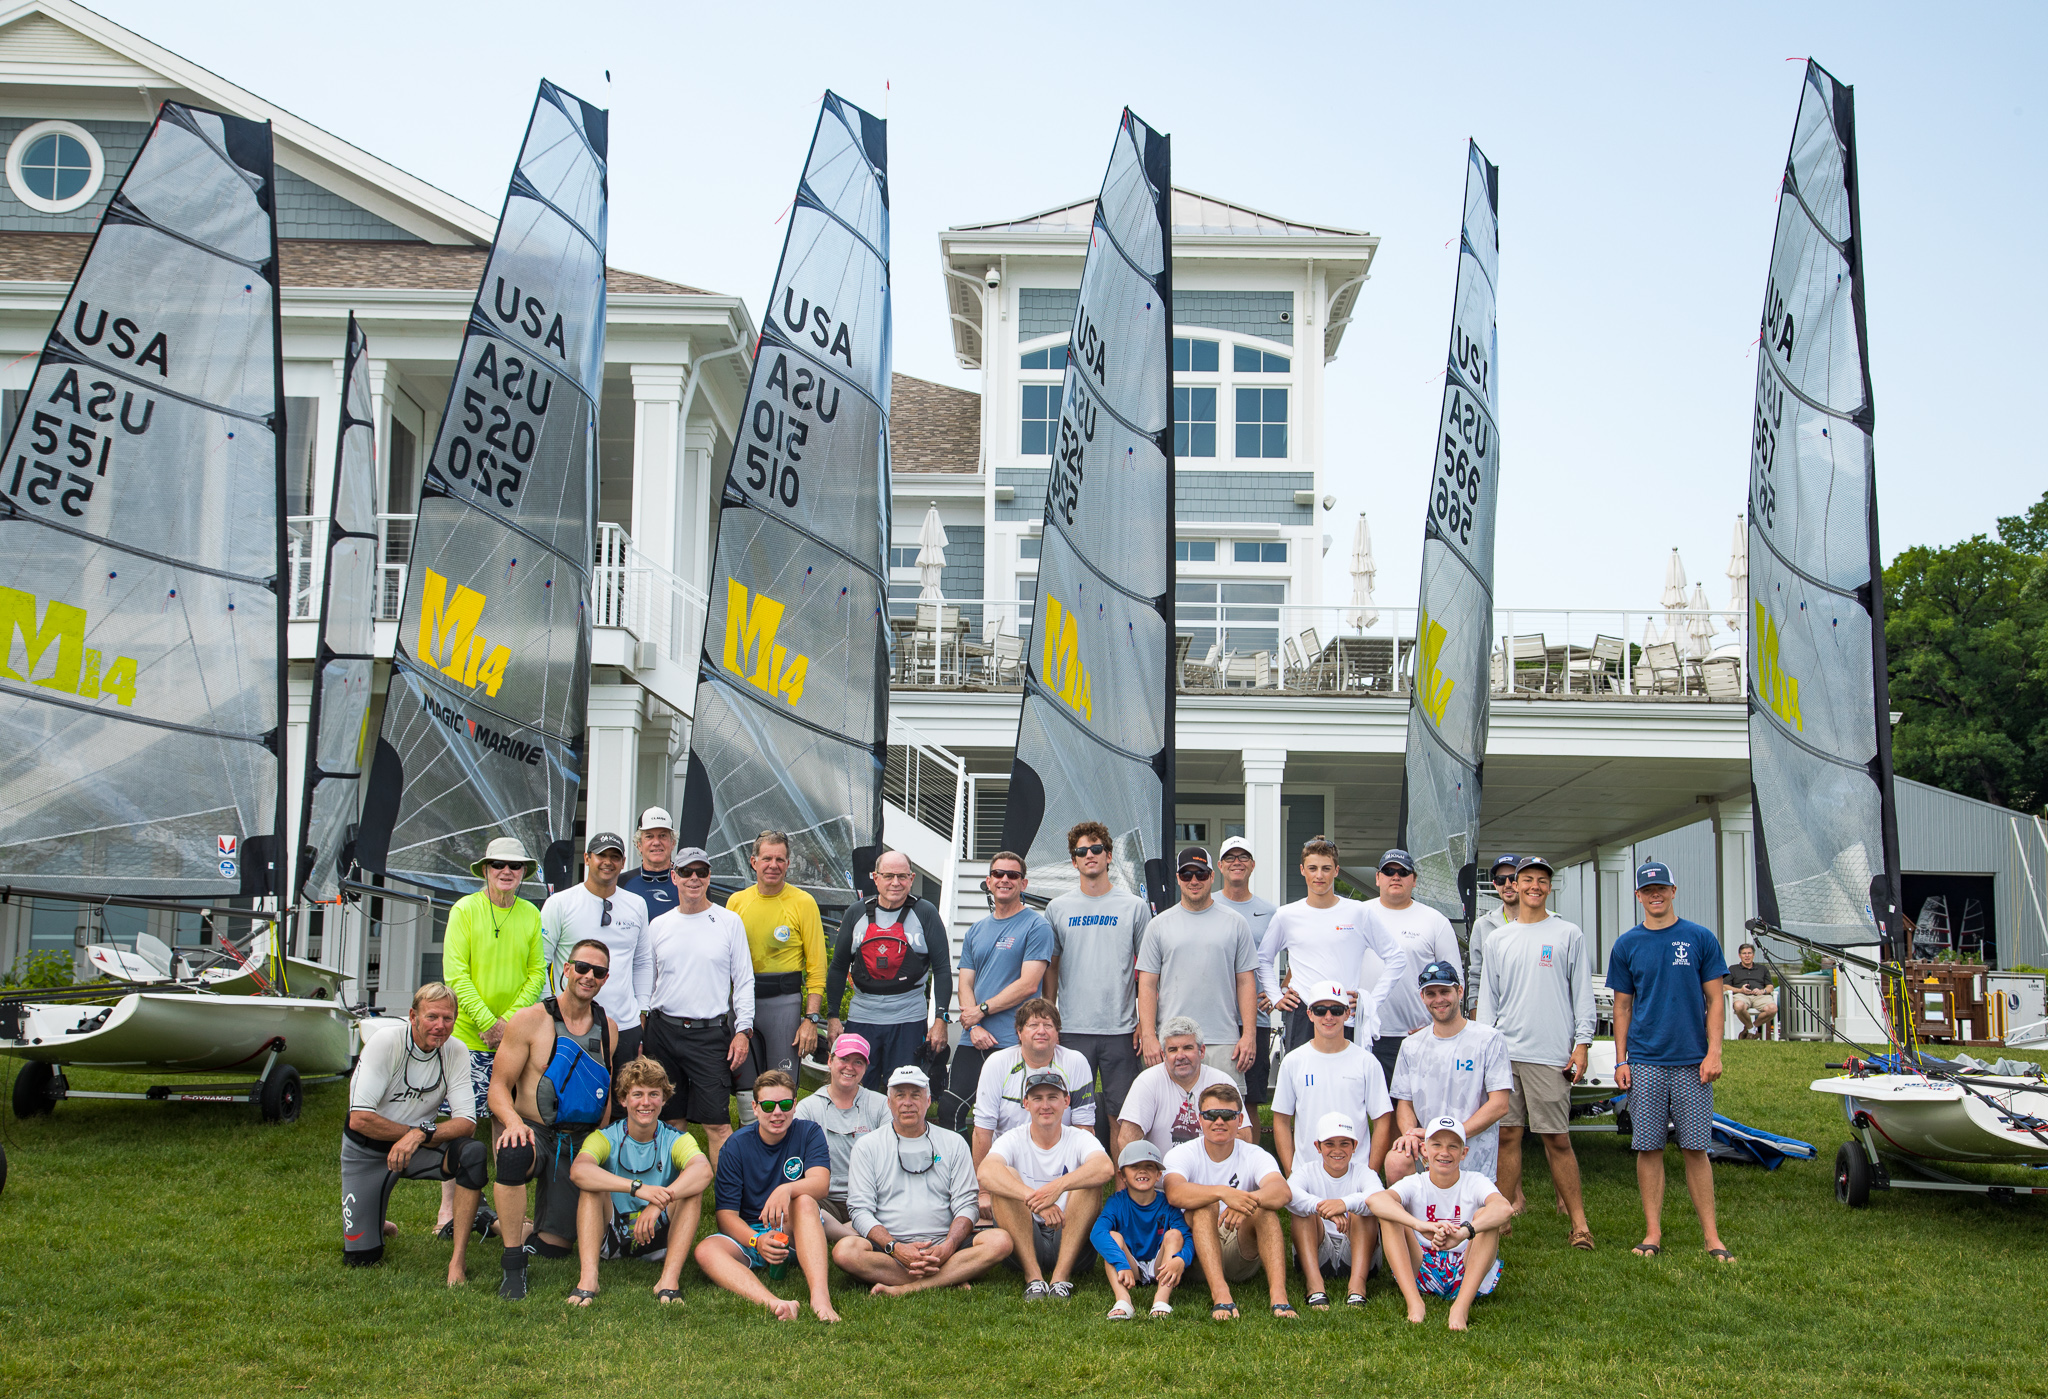 Some of the competitors at the Melges 14 U.S. National Championship